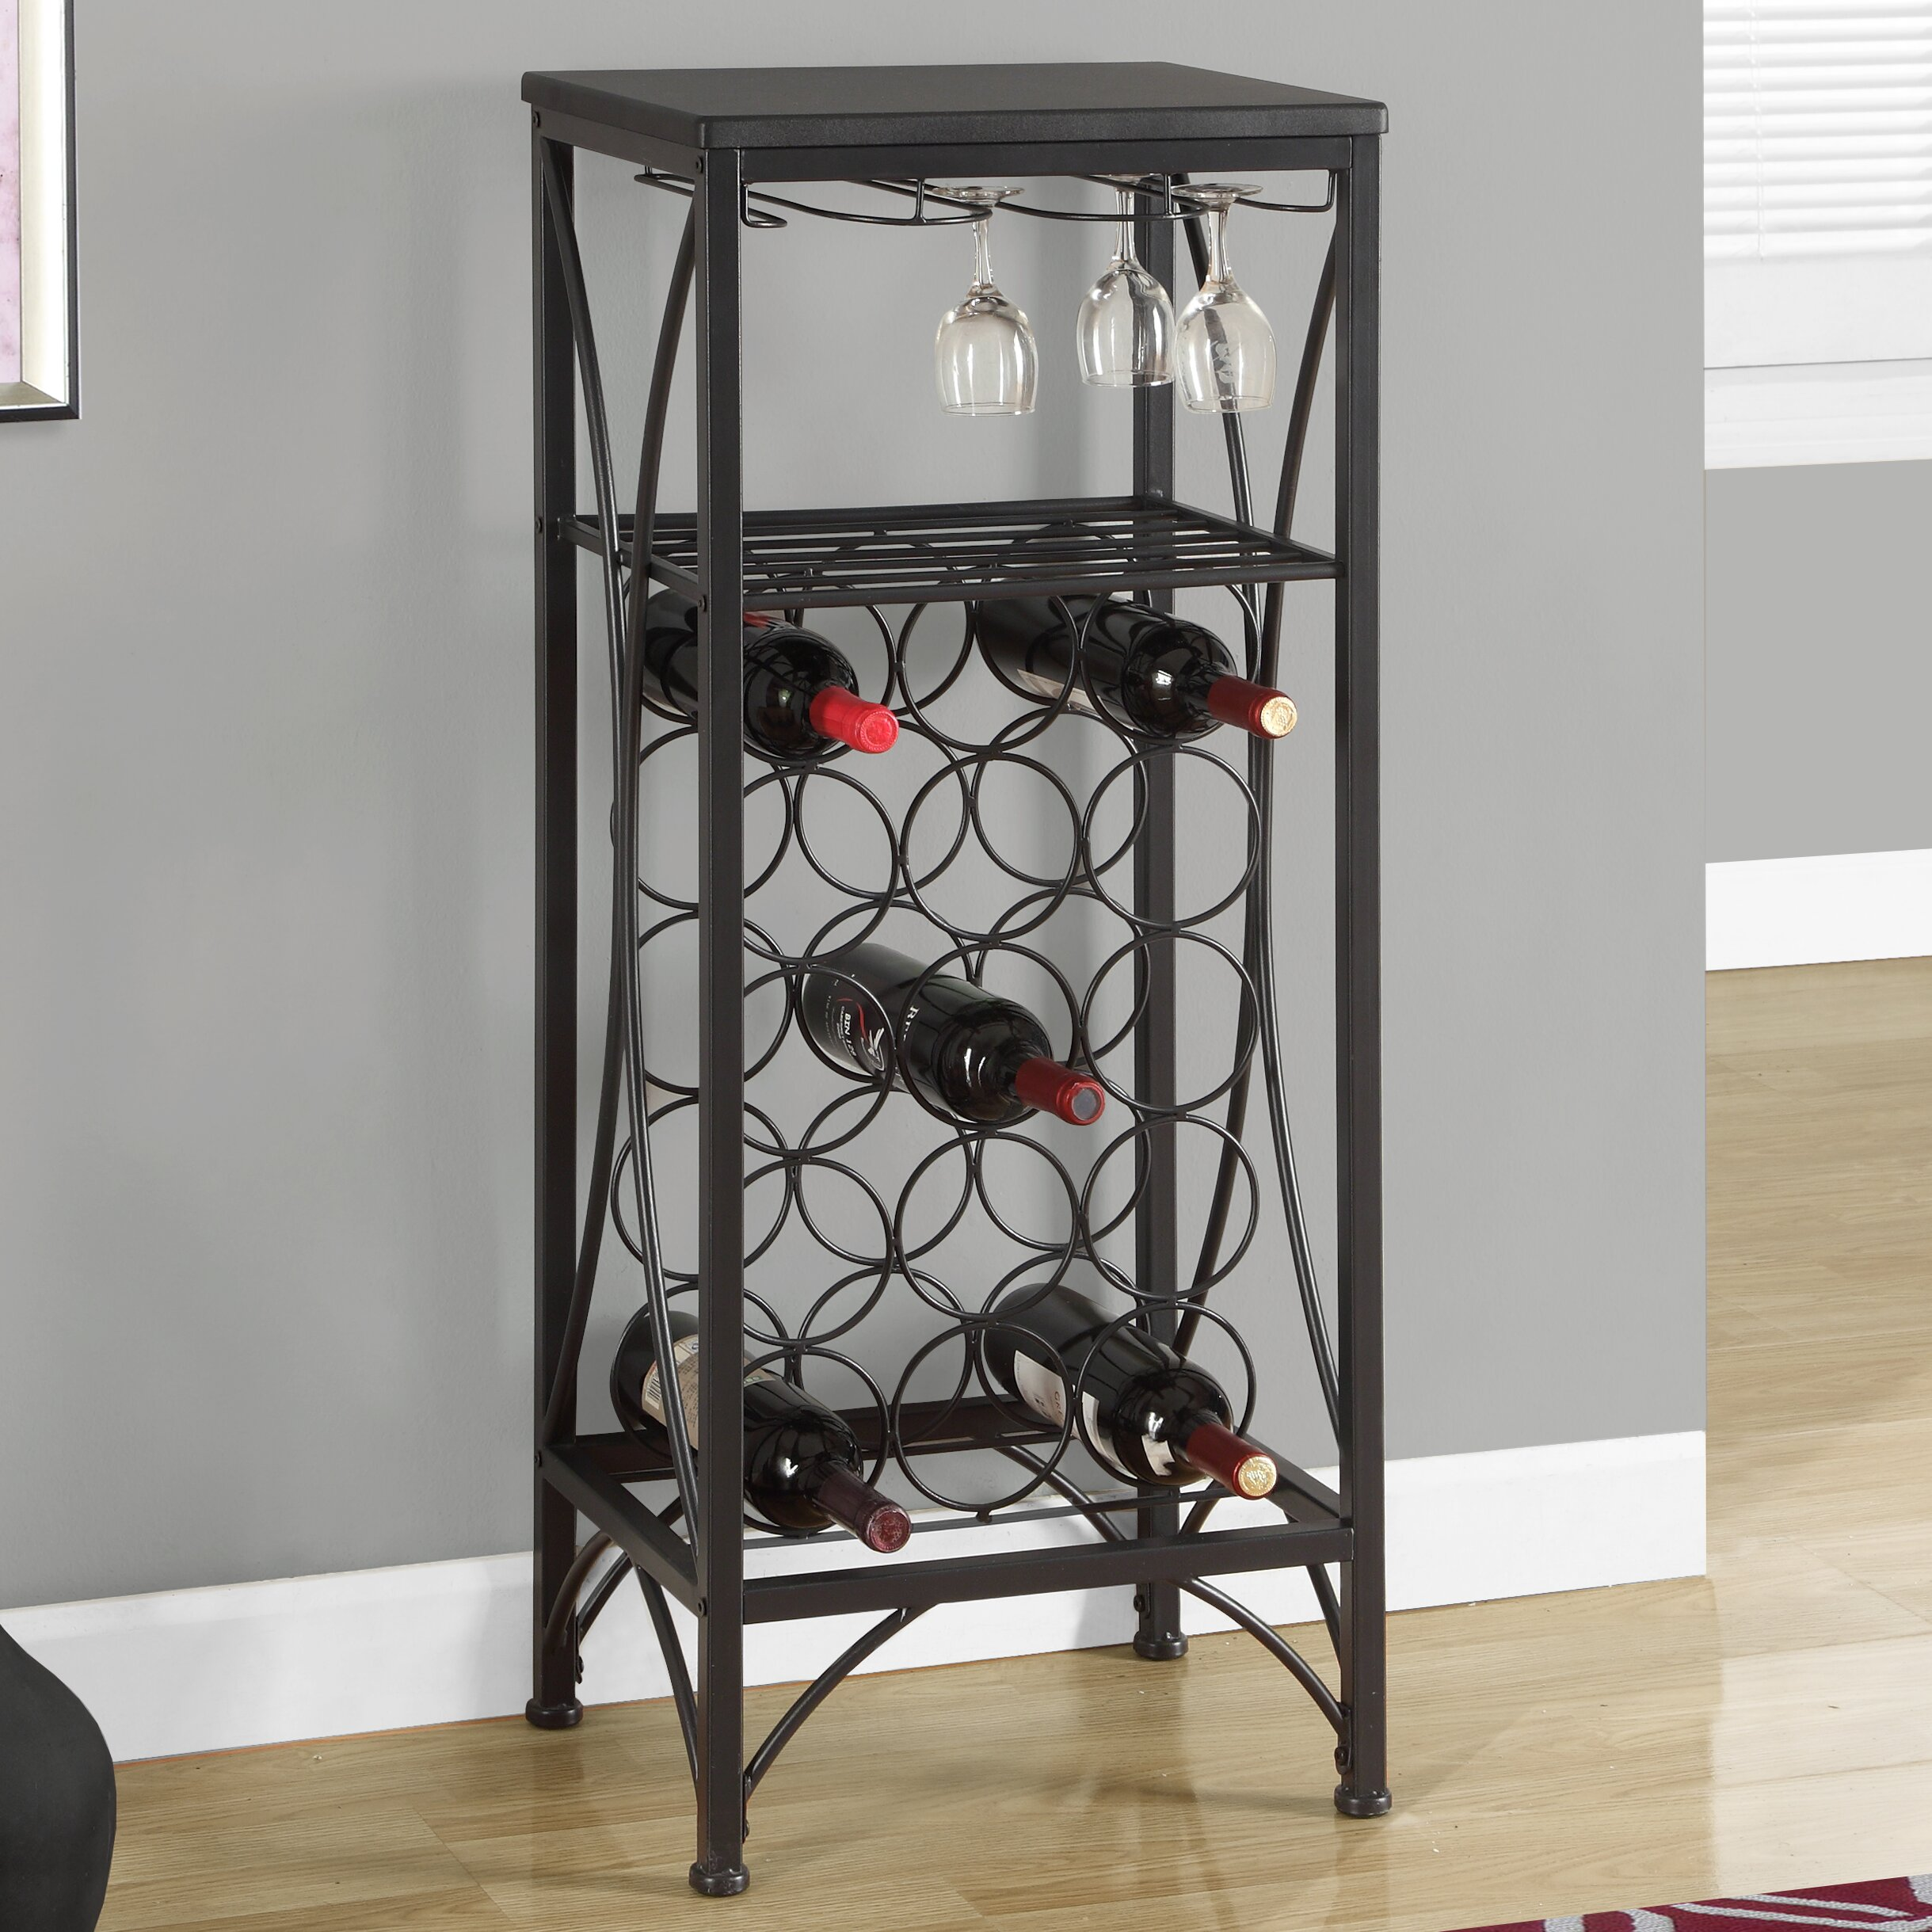 Monarch specialties inc 15 bottle floor wine rack for Floor wine rack